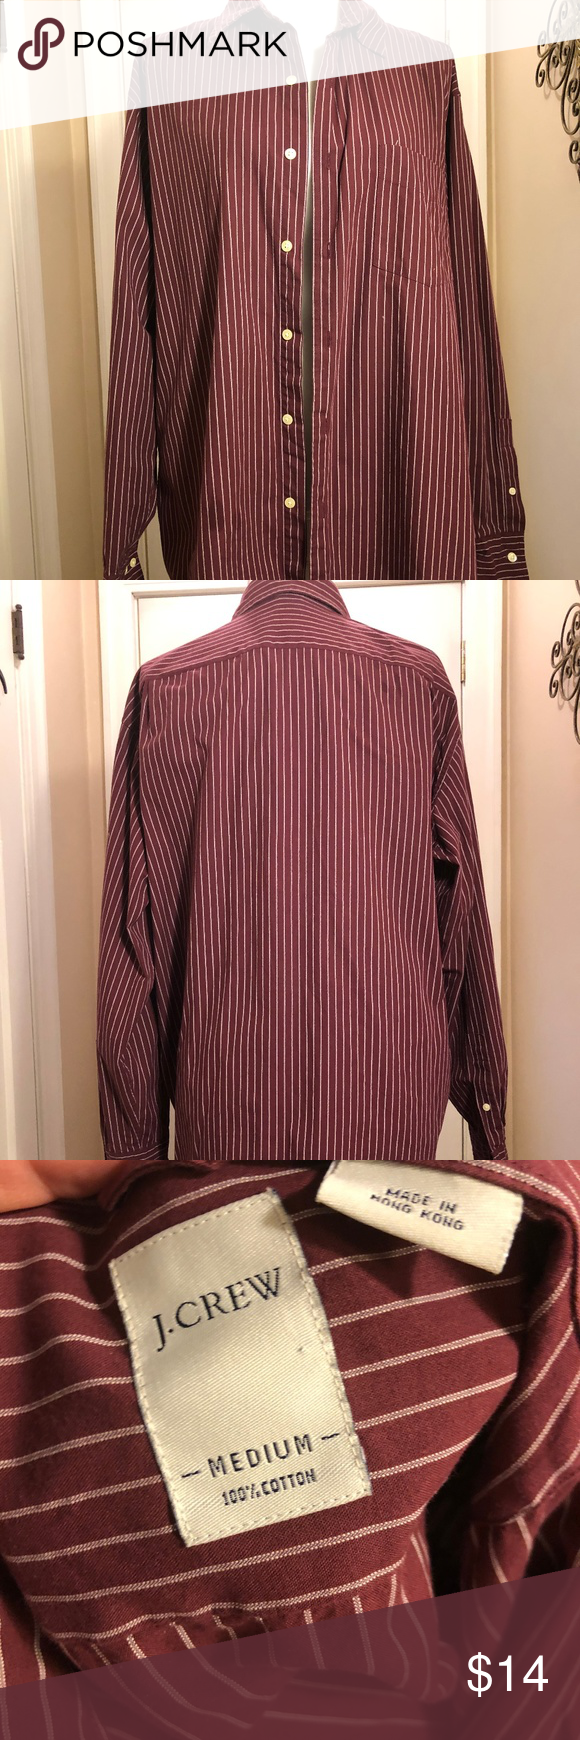 J. CREW BUTTON DOWN - M Mens J. Crew burgandy and white striped button down Size...